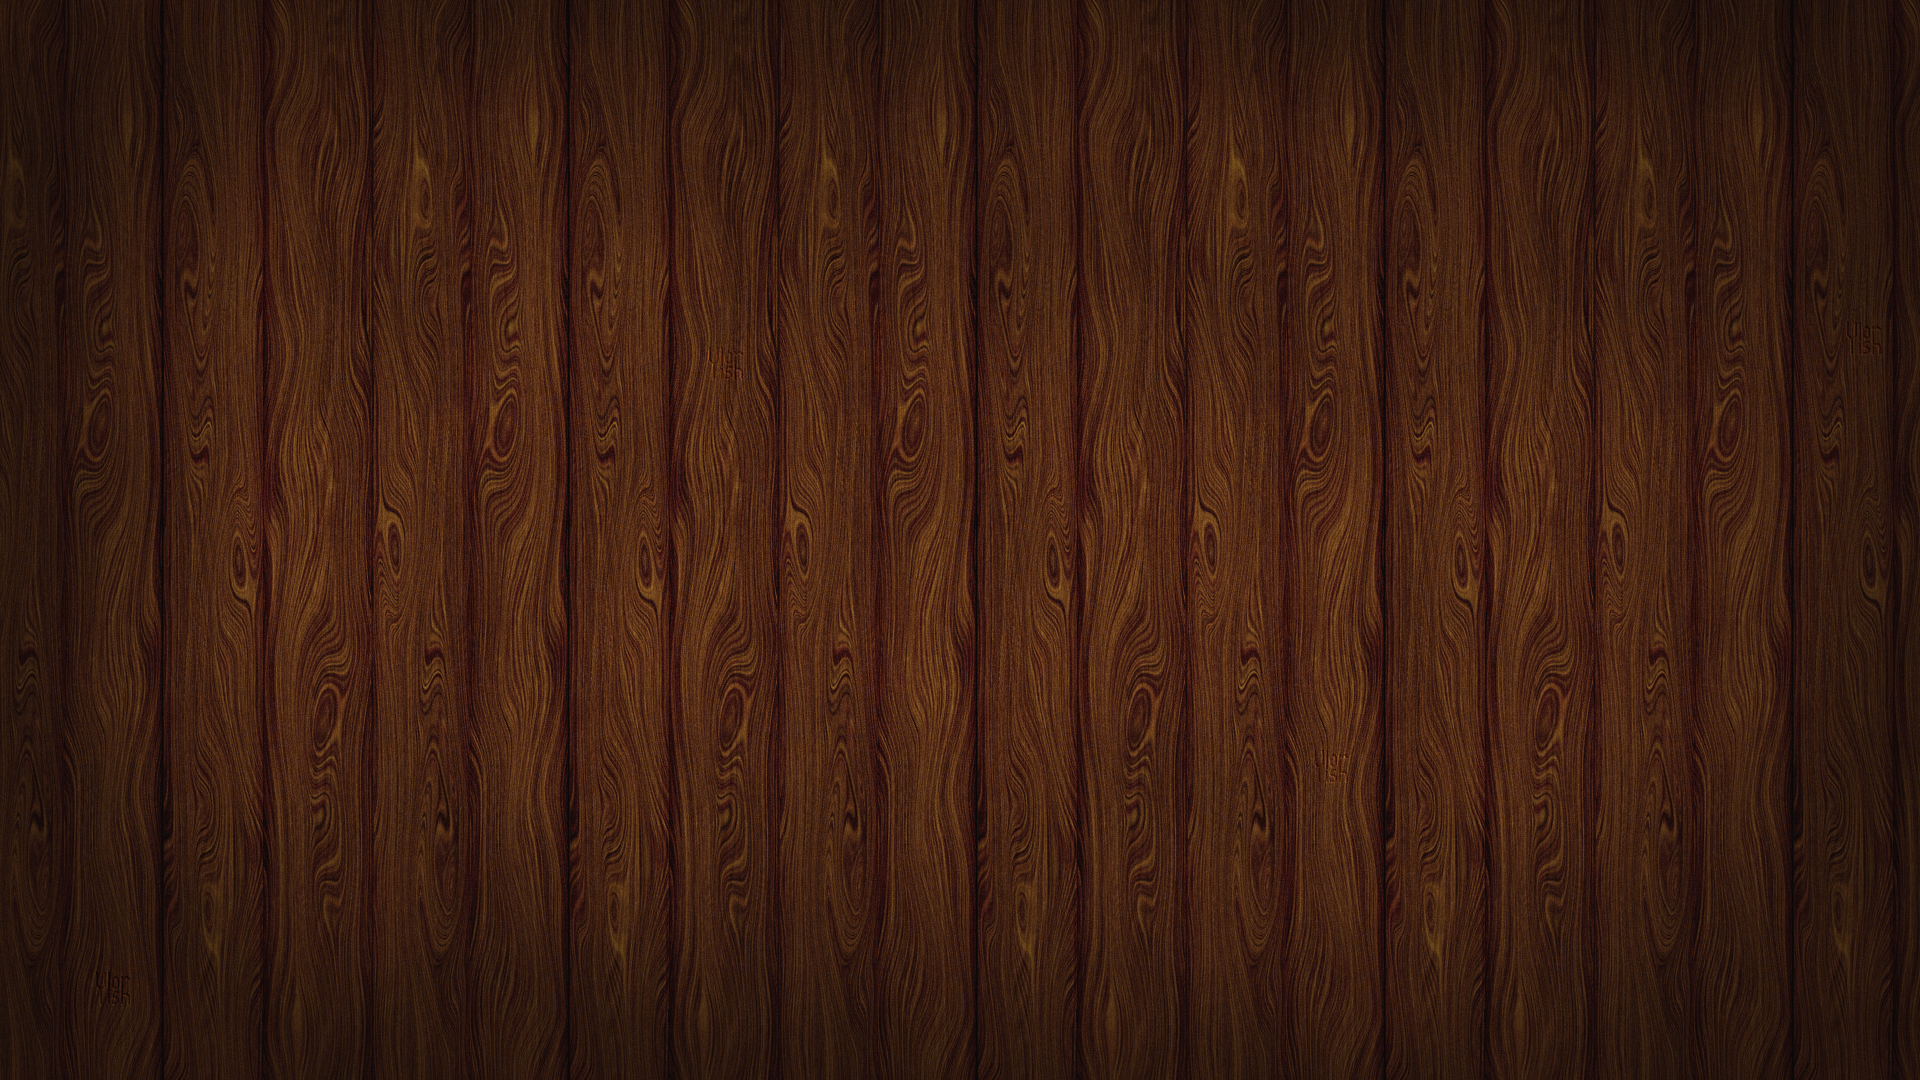 wallpopercomwallpaperwood textures 311175 1920x1080